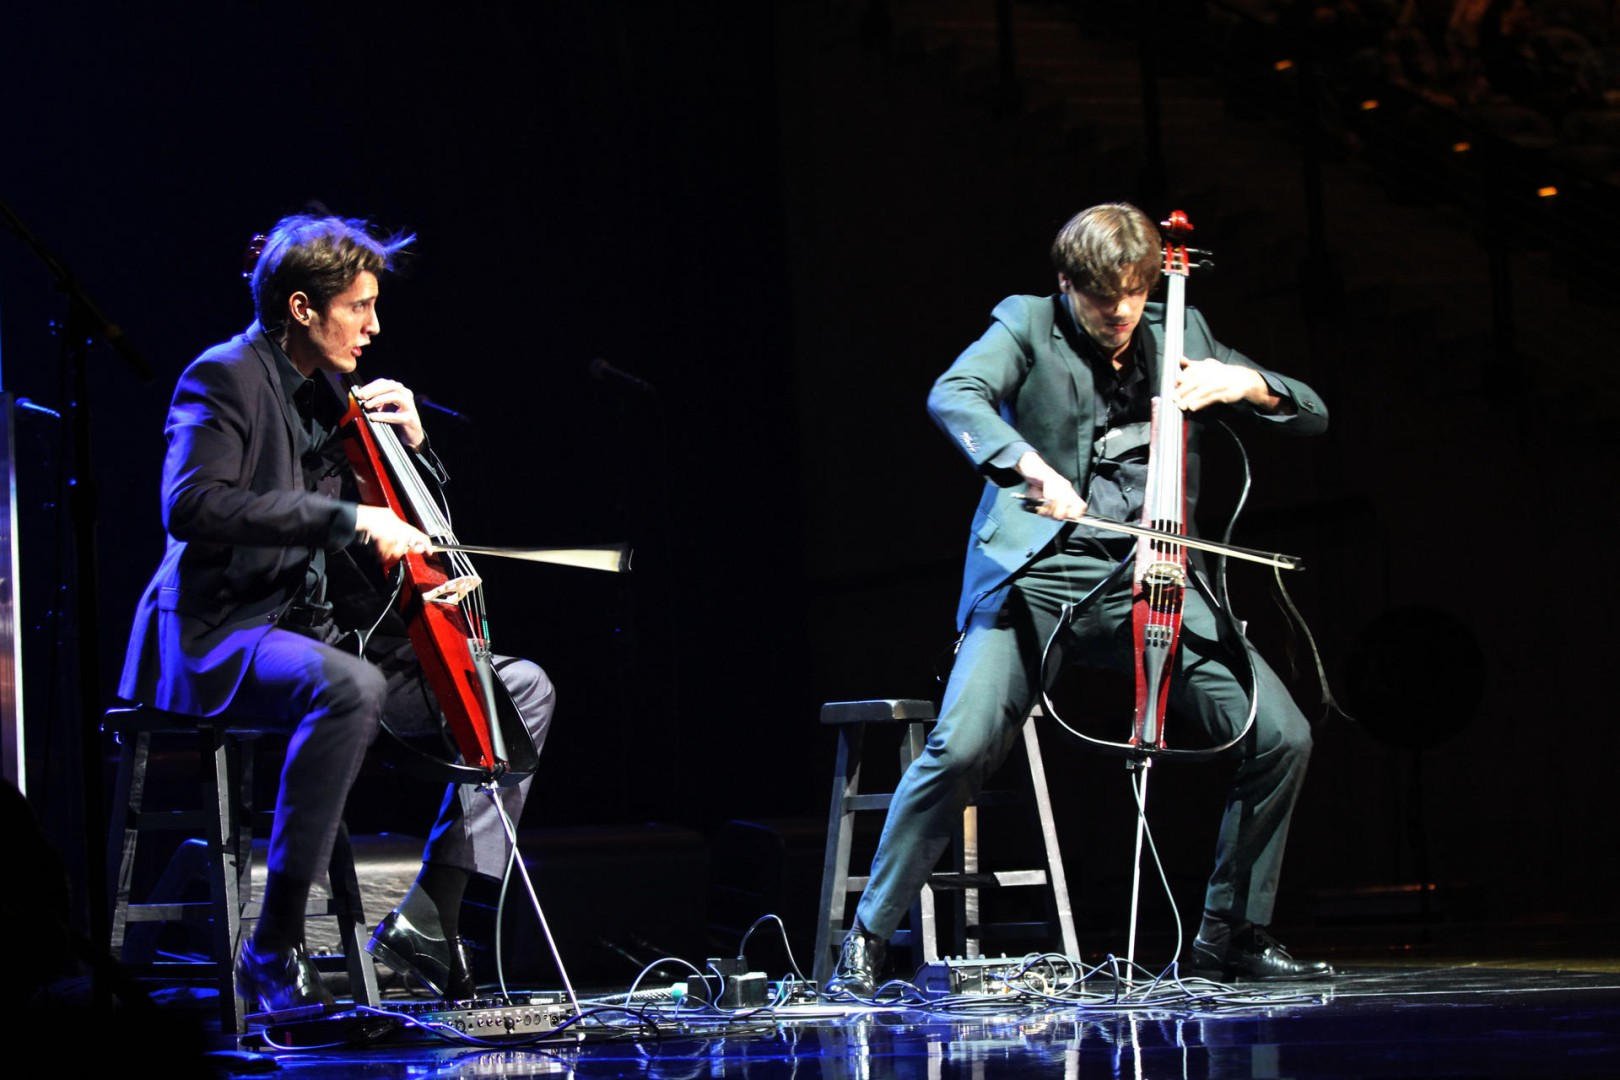 2Cellos bring their classical crossover show to Hong Kong